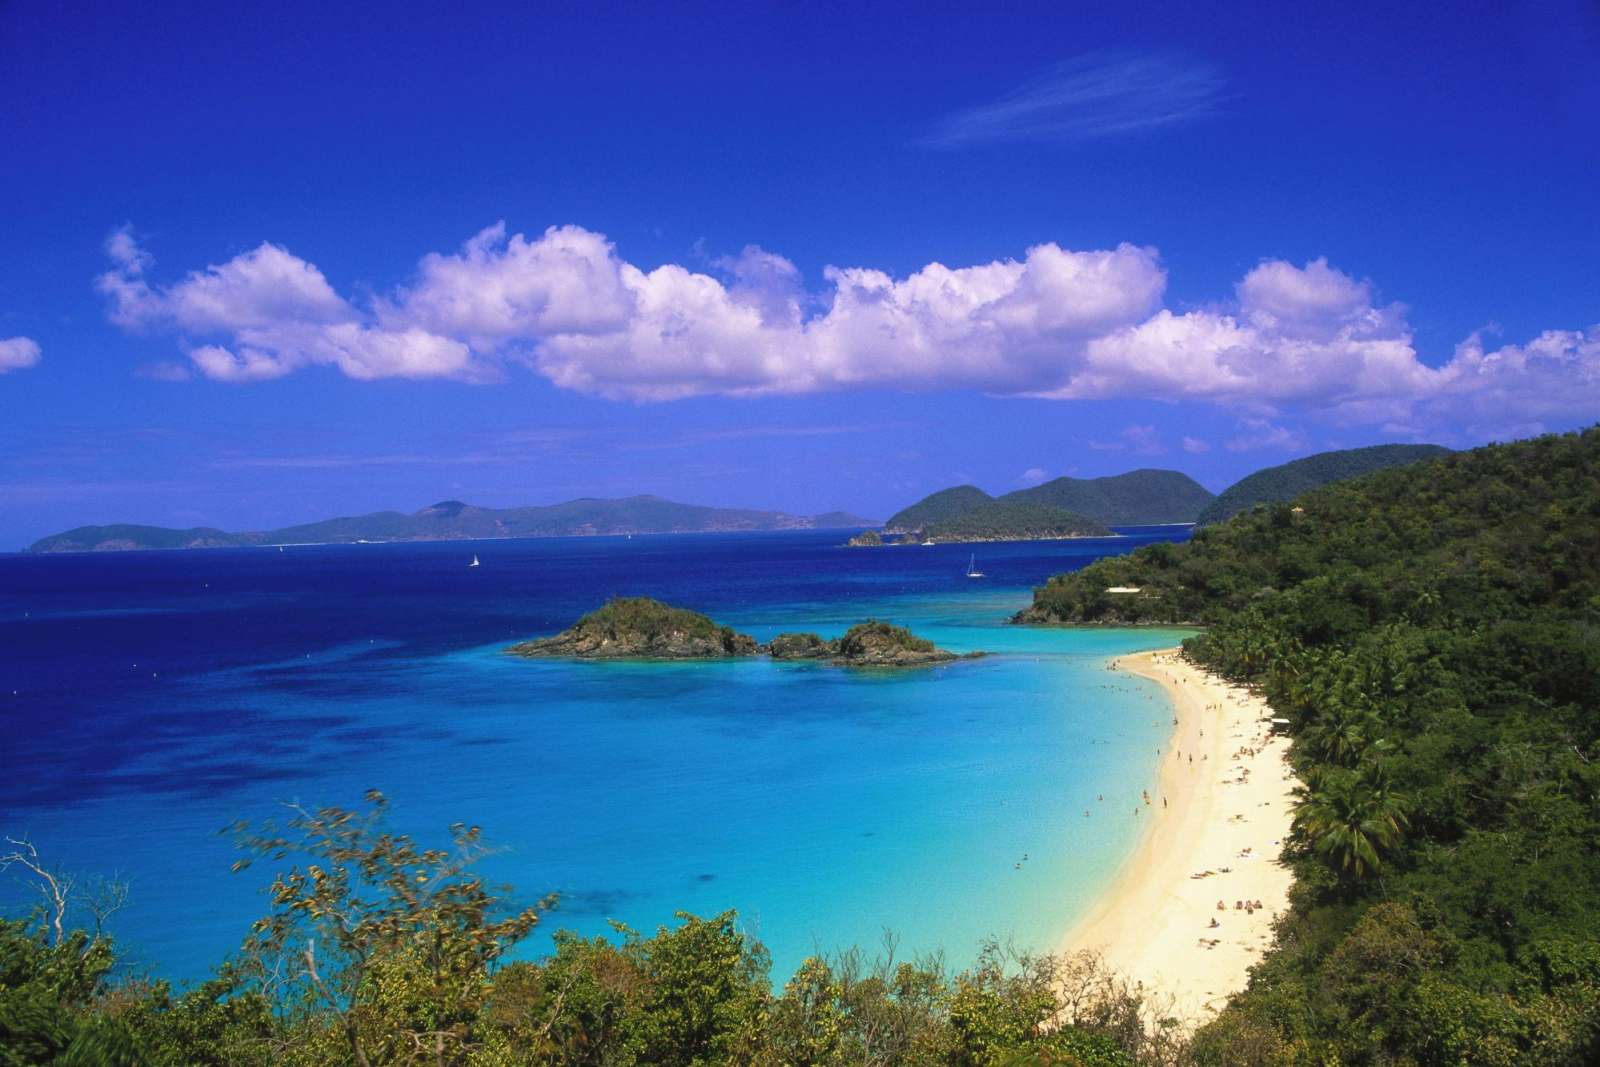 Bay US Virgin Islands Wallpapers Photos Pictures and Backgrounds 1600x1067